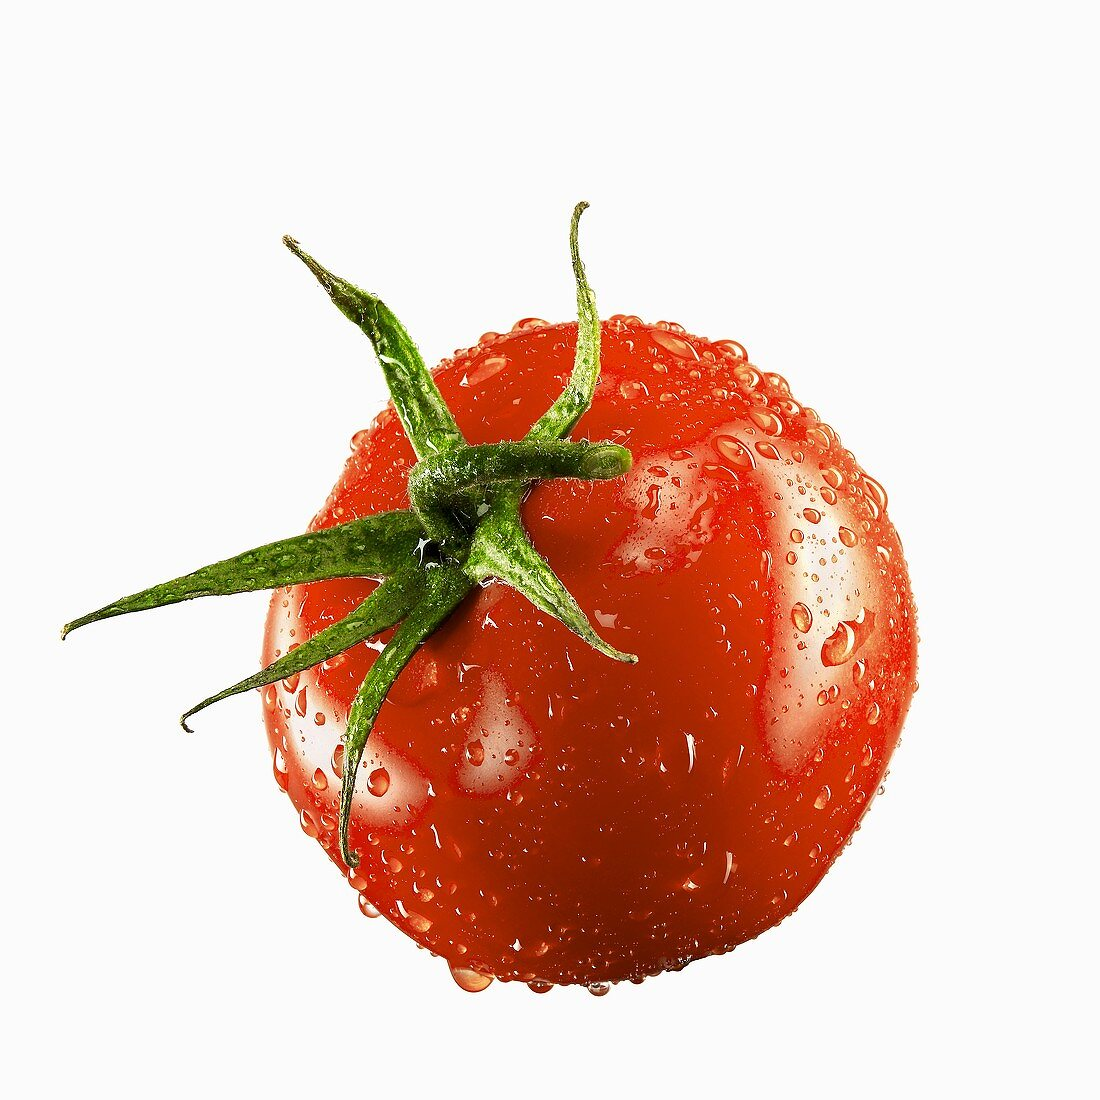 A tomato with drops of water